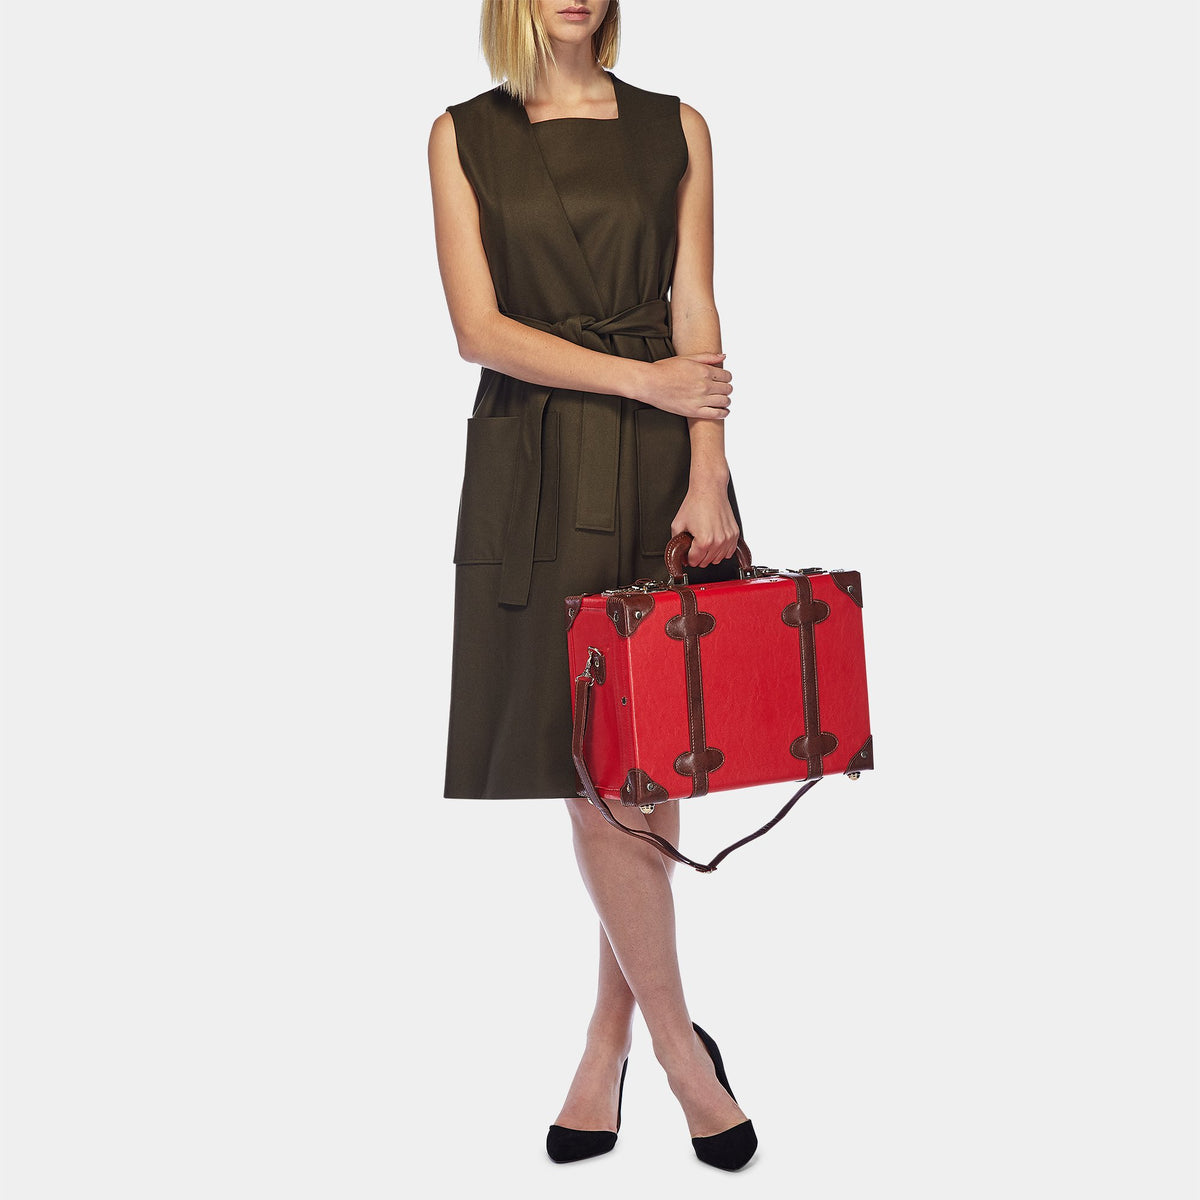 The Entrepreneur Overnighter in Red - Vintage-Inspired Vegan Luggage - Exterior Front with Model